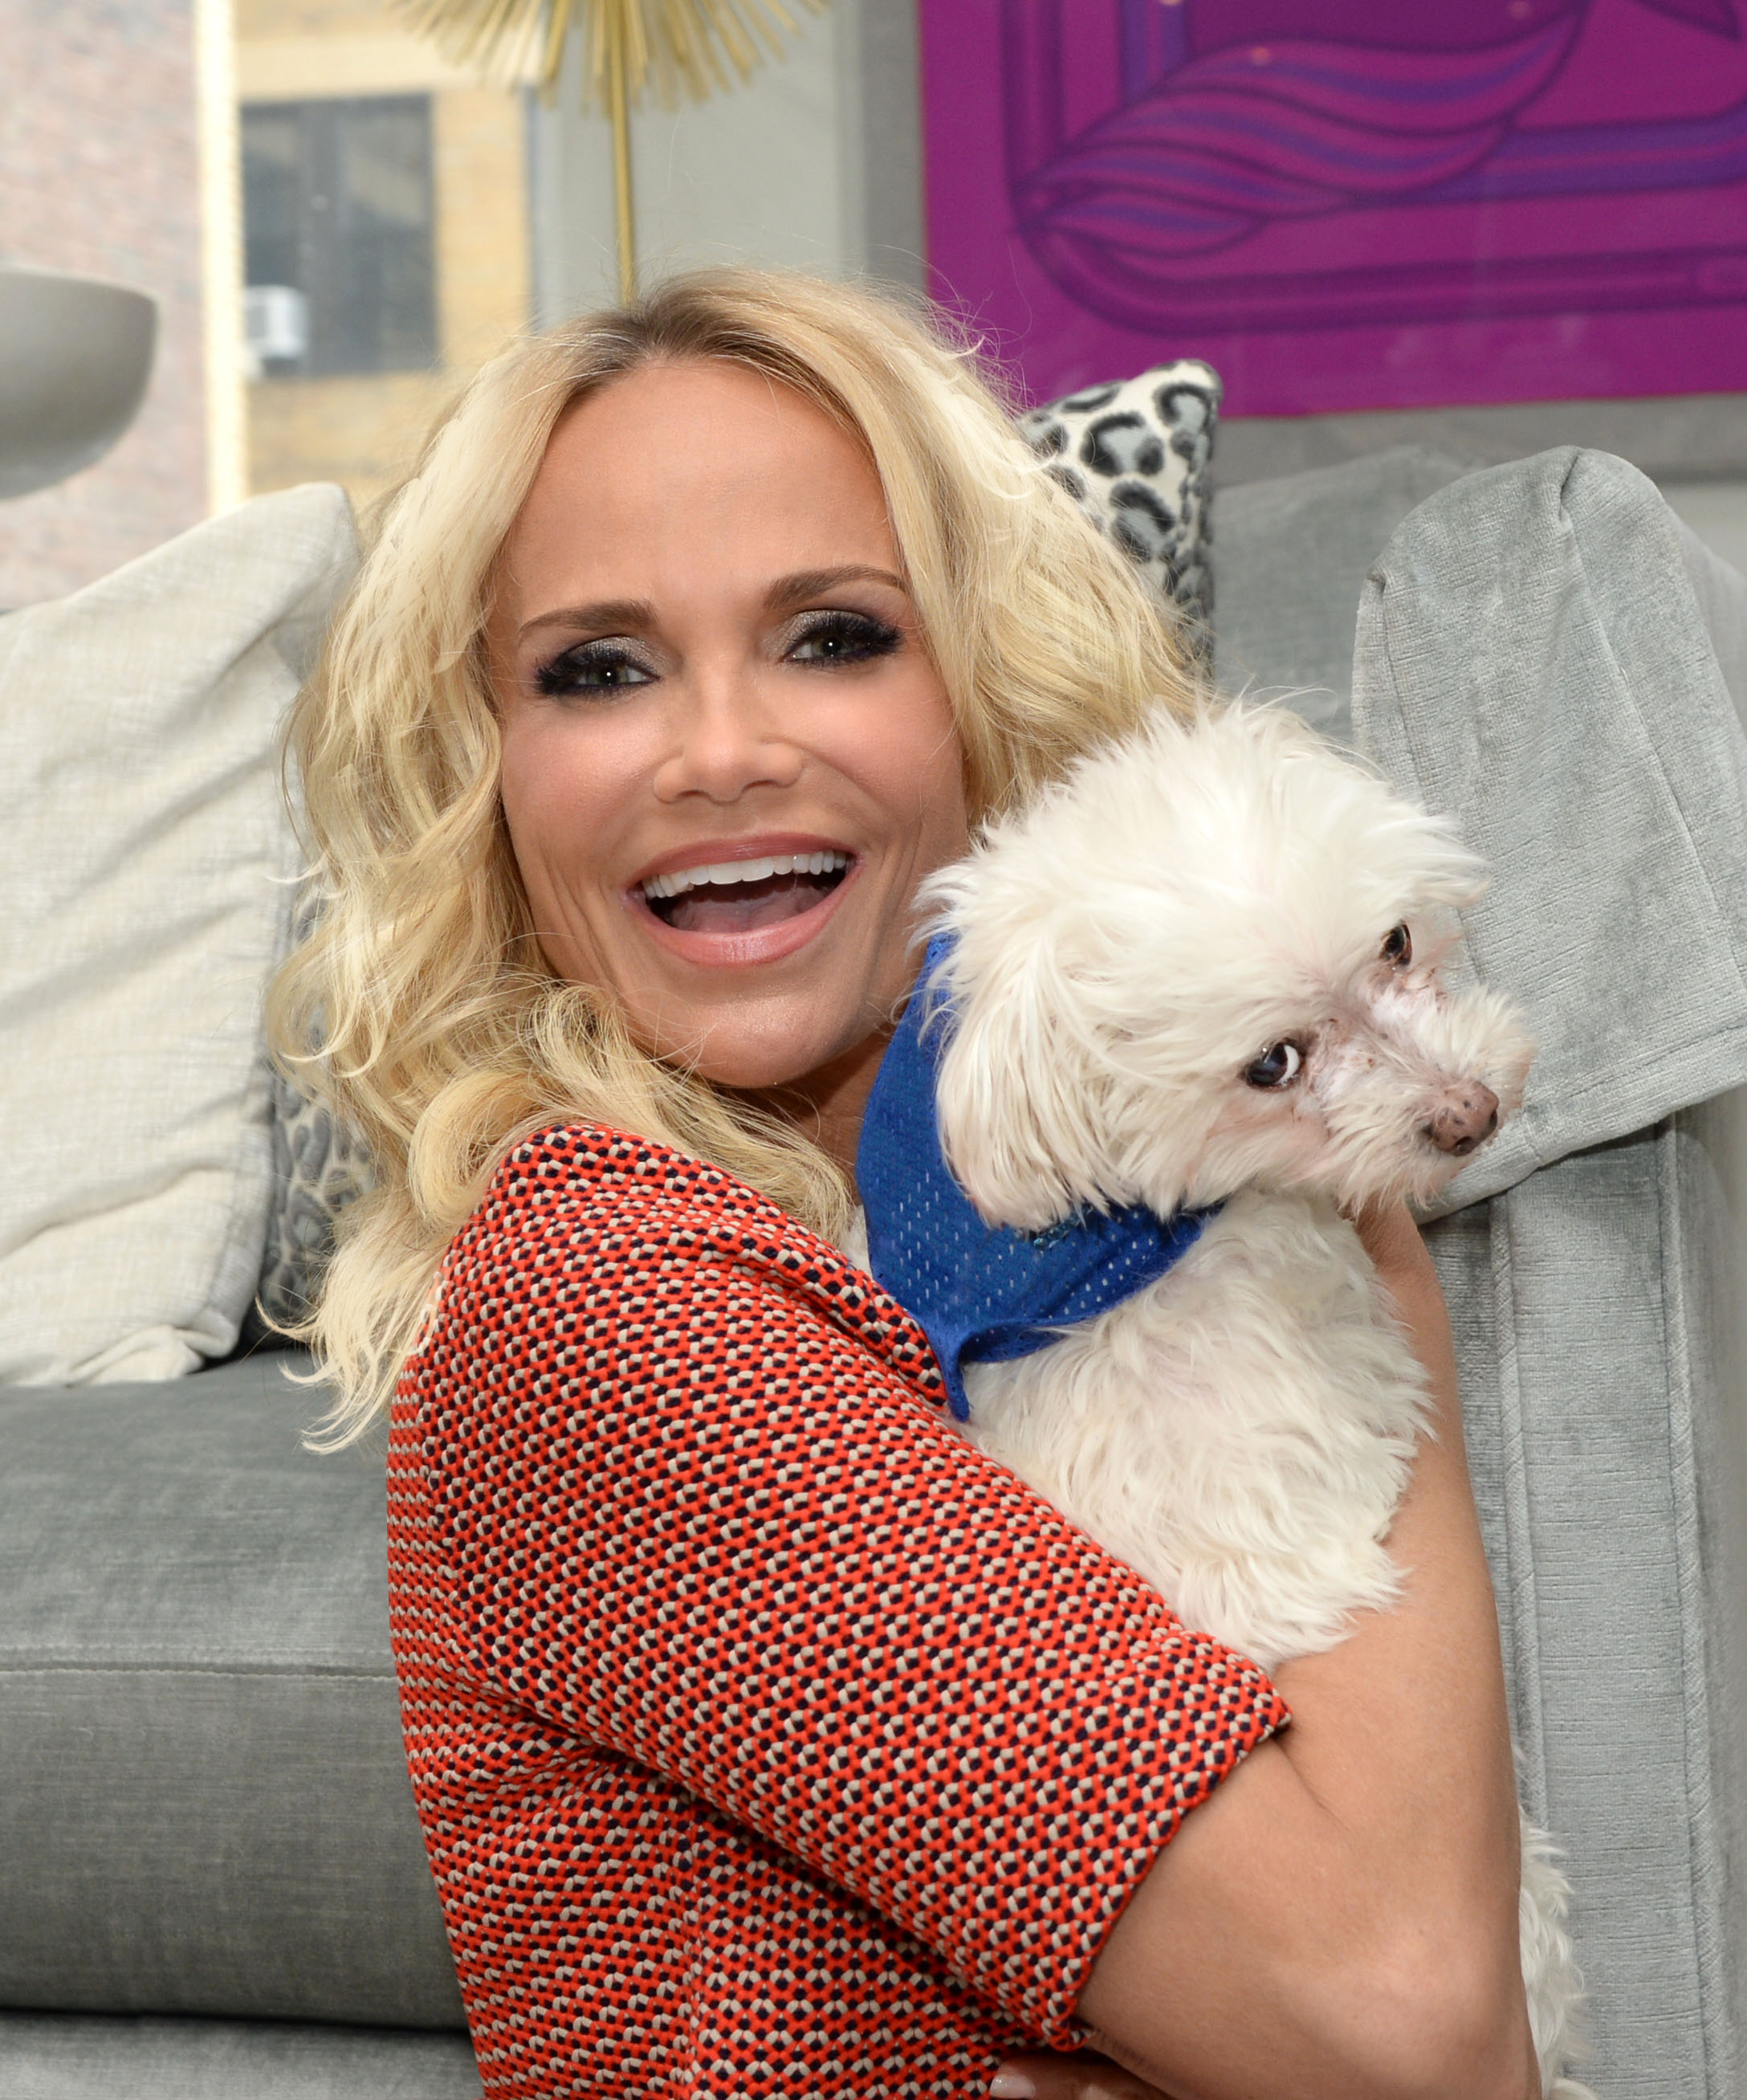 Kristin Chenoweth, actress, musician and spokesperson for the Mars Petcare Mix Mania campaign, poses with her dog Maddie. Chenoweth has joined the Mix Mania madness lending her voice to a series of hysterical voiceovers that will be used to remix dogs' freakouts. So dogs, get your tails waggin' and owners just MIX IN & LOOK OUT!